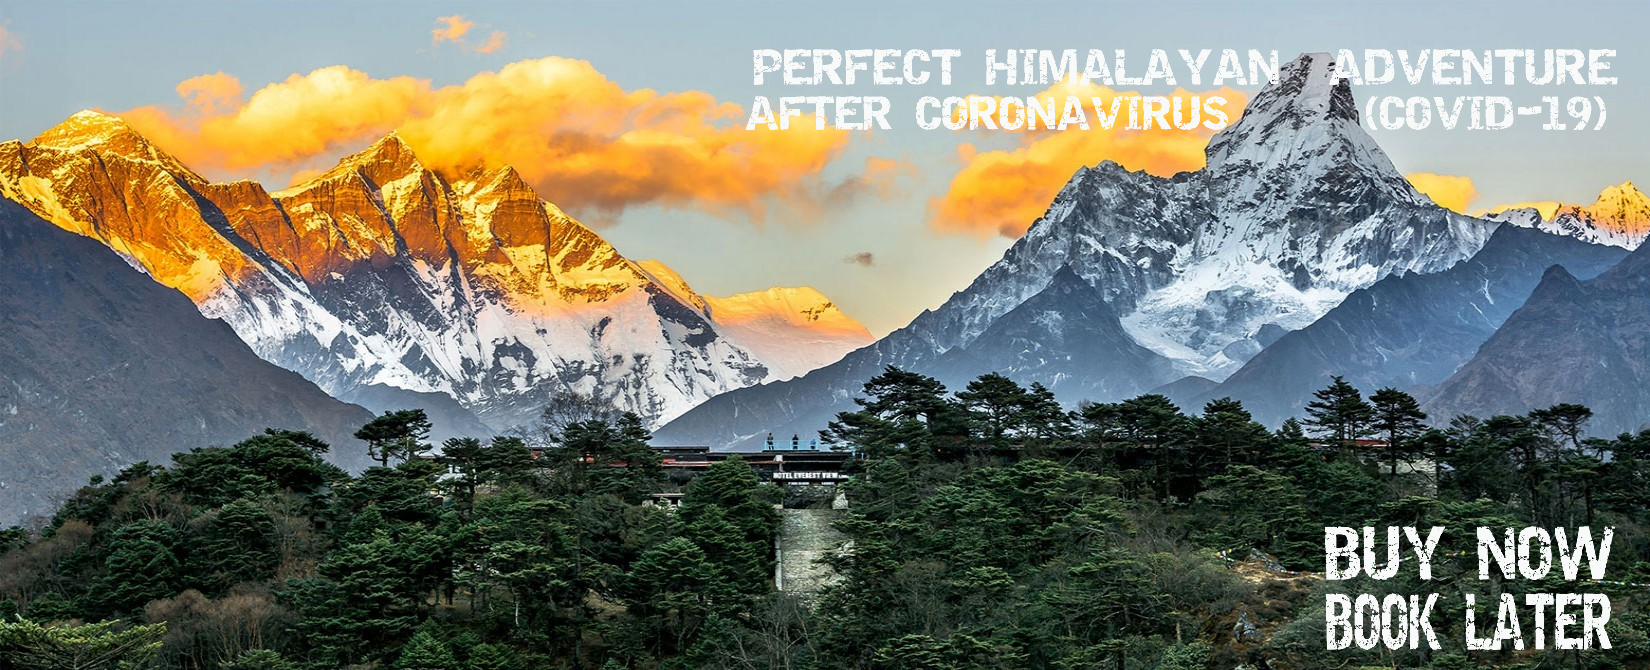 Himalayan Adventure After Covid 19 pandemic